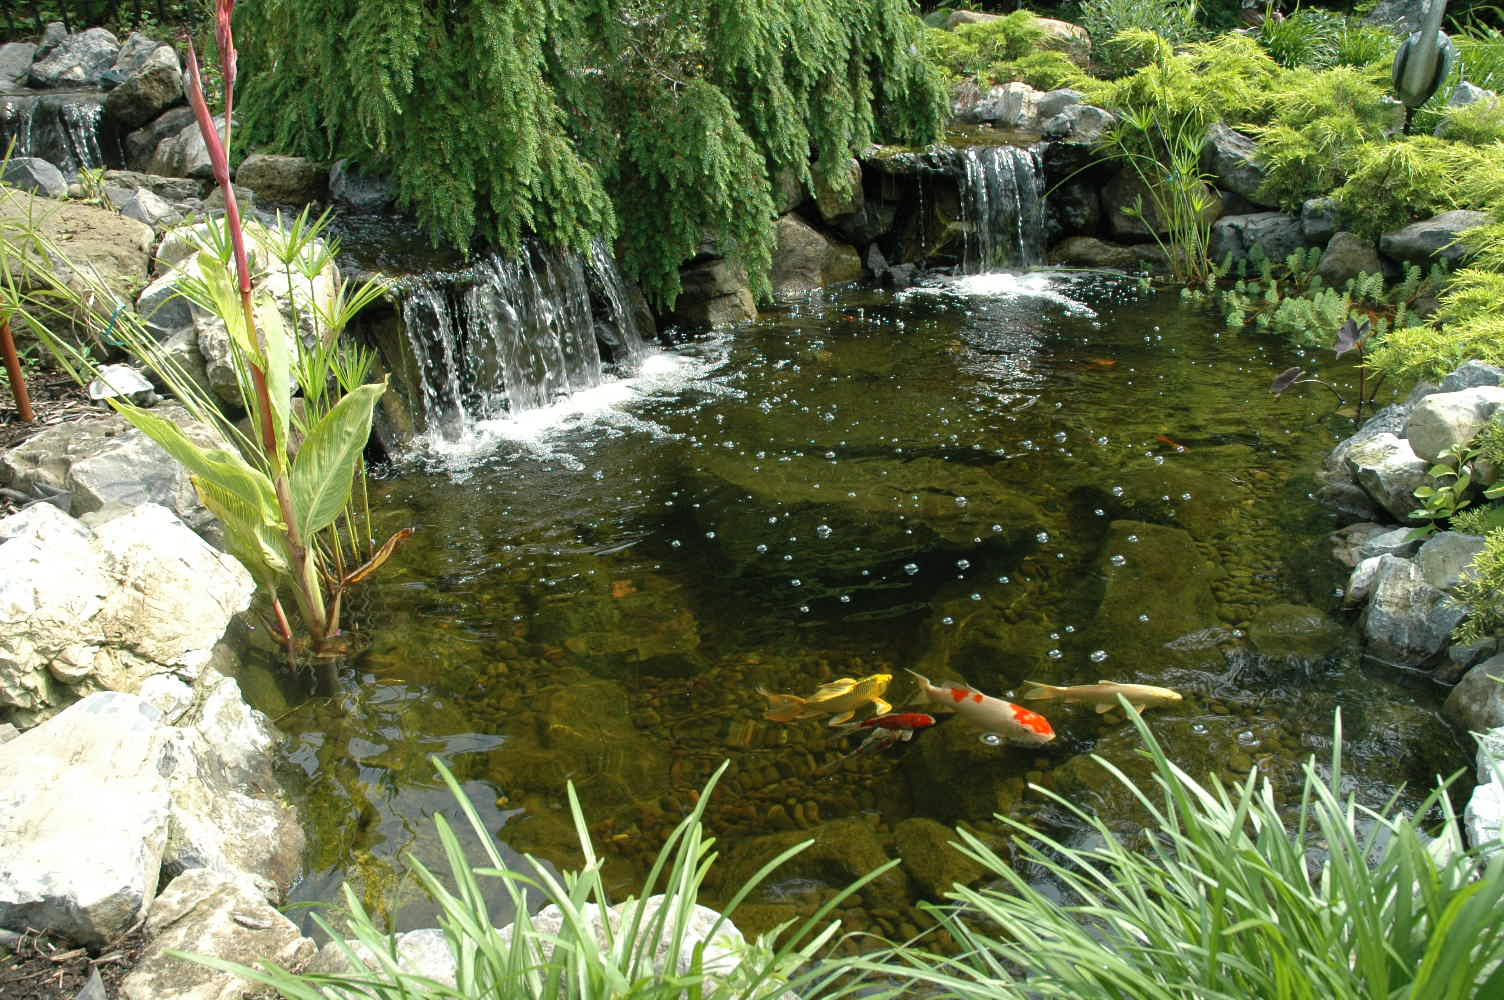 Are koi carp difficult to keep in backyard ponds the for Koi ponds and gardens